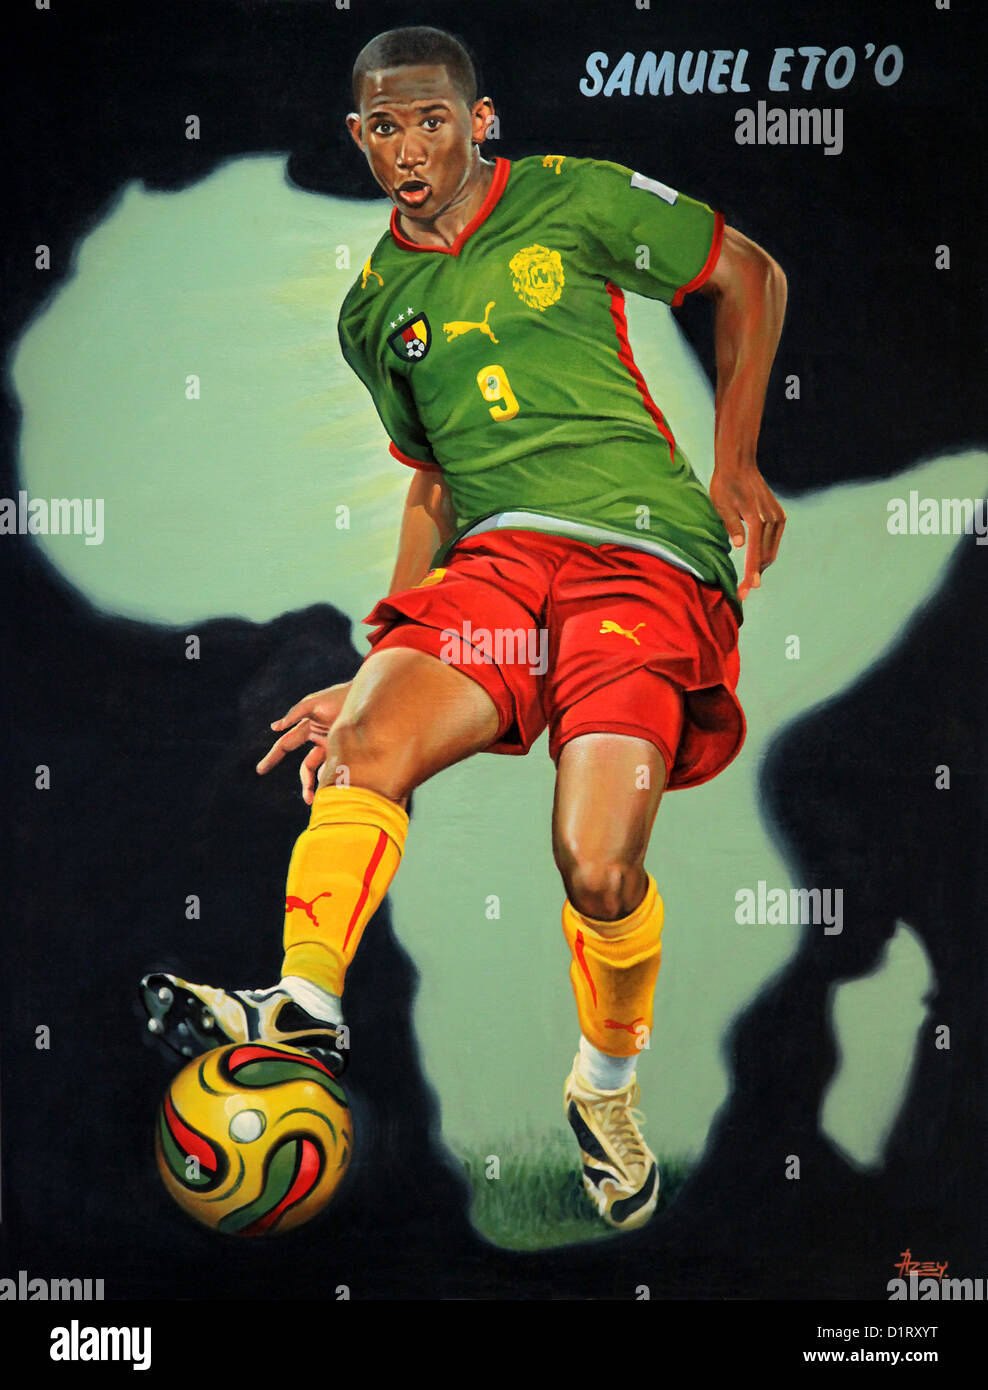 Painting of footballer Samuel Eto'o,painted by Isaac Okyere Asey,Kumasi,Ghana.2010.Oil on canvas. - Stock Image